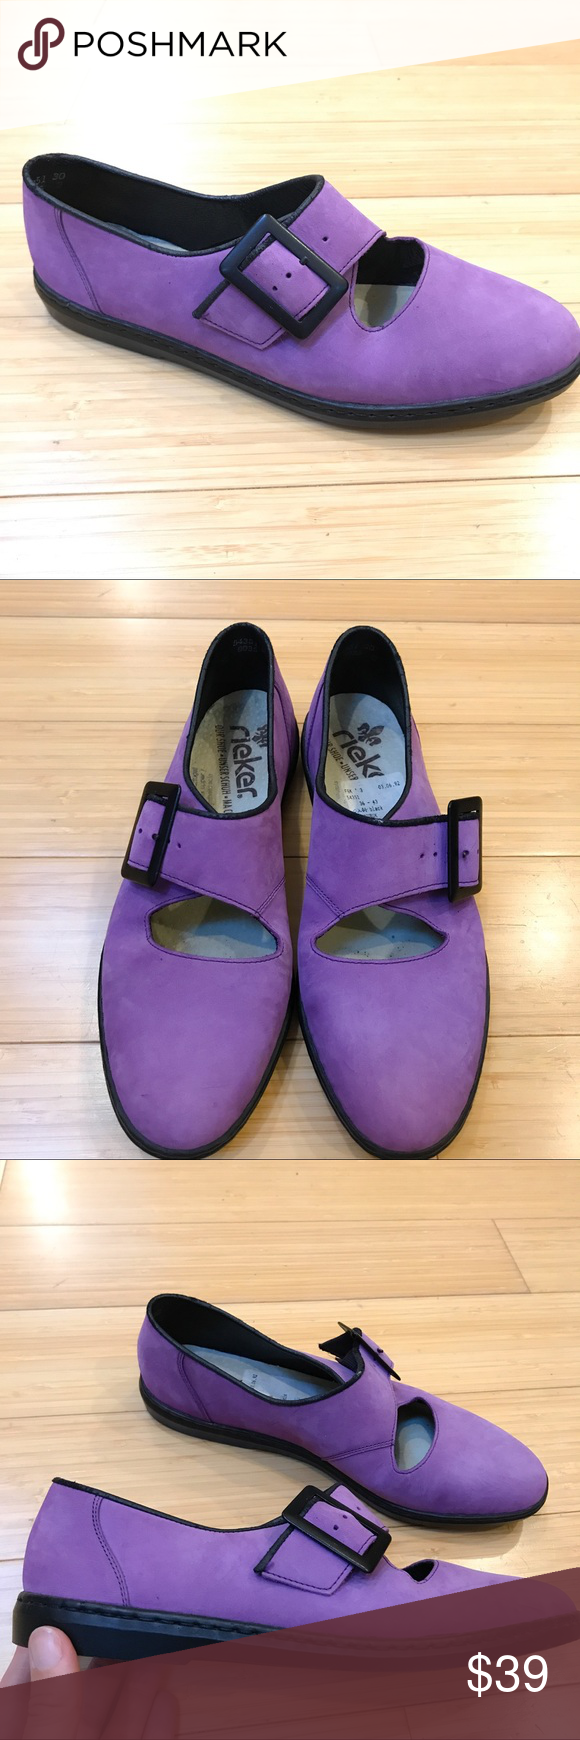 14290126e0fca RIEKER purple leather maryjane loafers, 36 So beautiful! Brand new without  box pair of